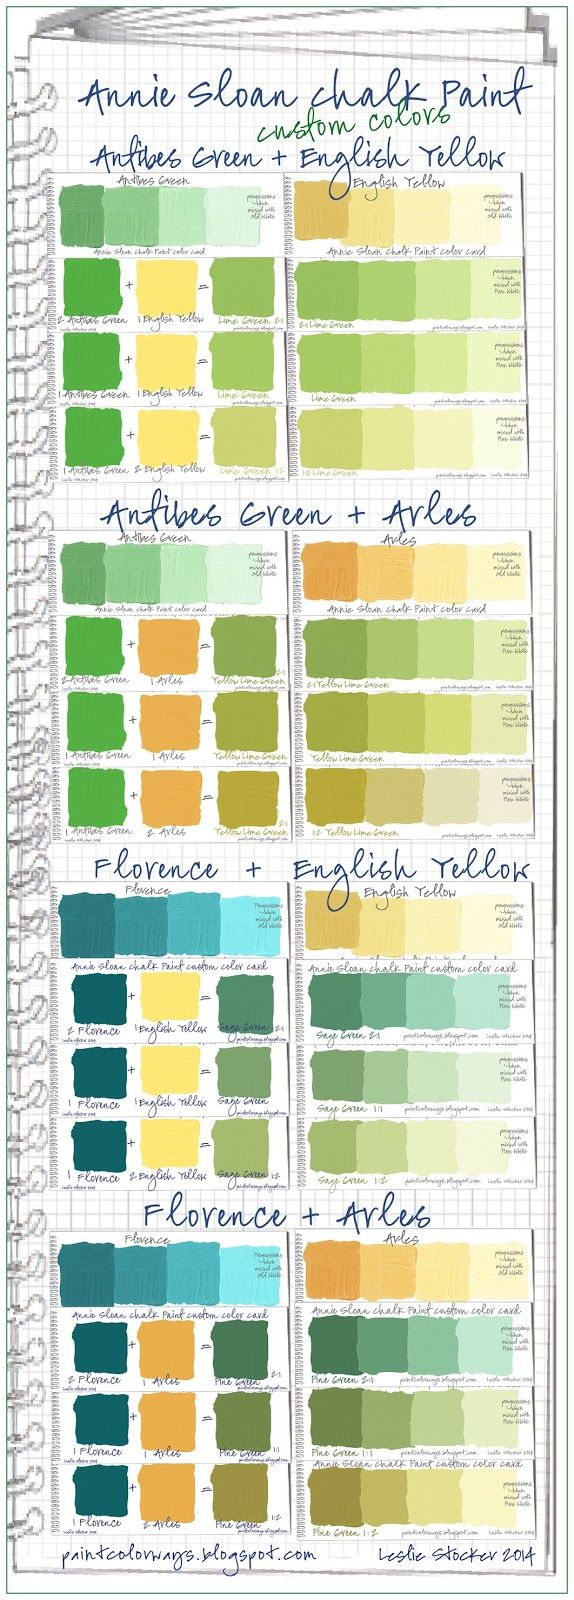 Colorways-This blog is filled with color combinations and runs on them.....lovely work using paints to create stunning finishes as well!